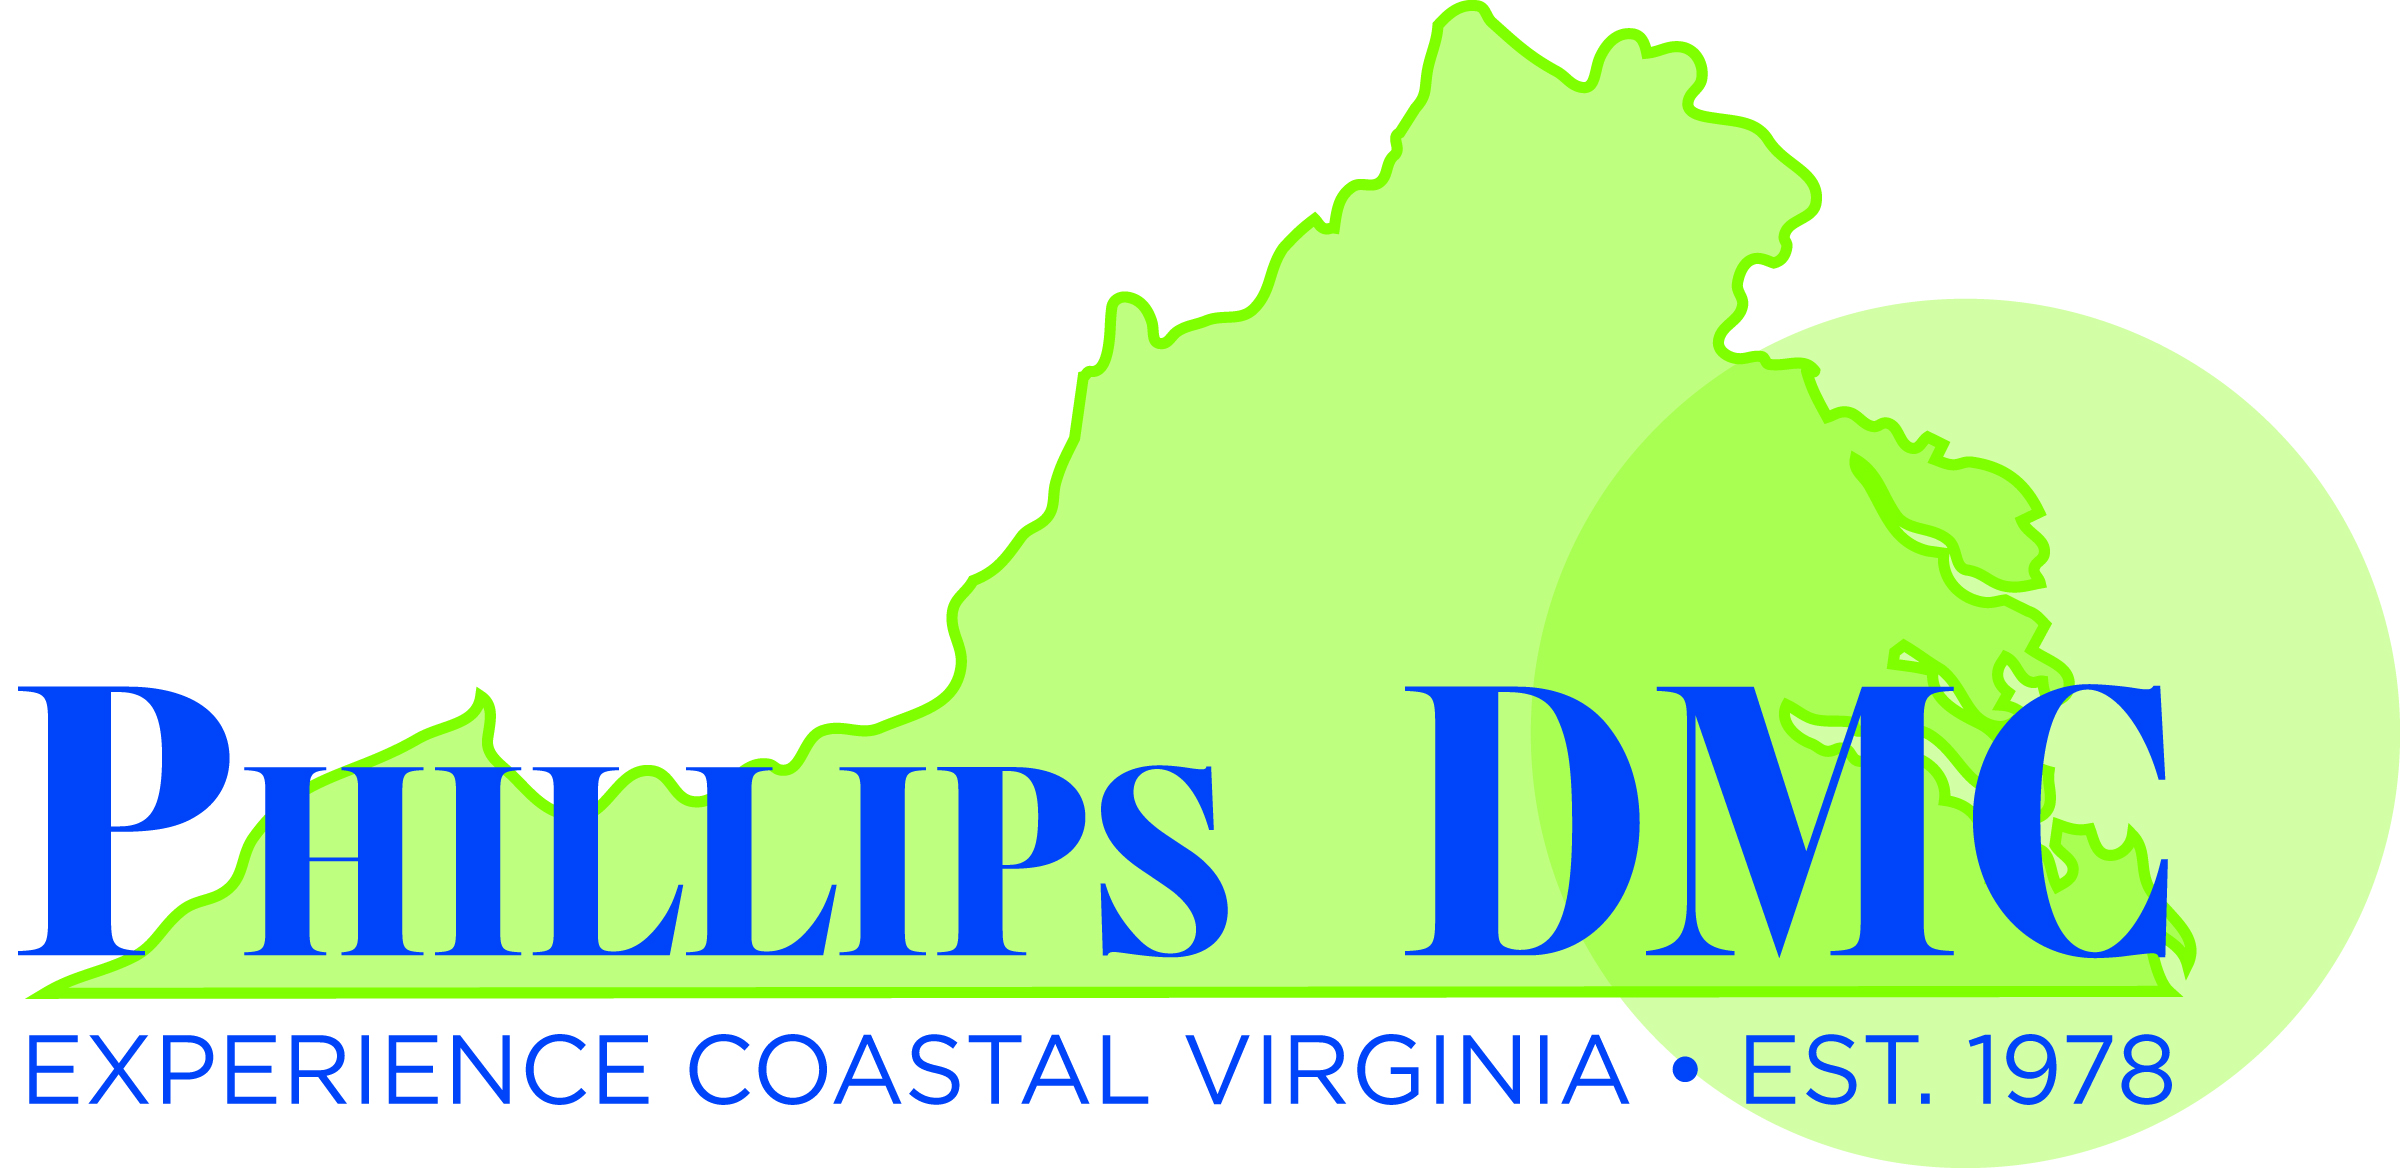 Phillips DMC